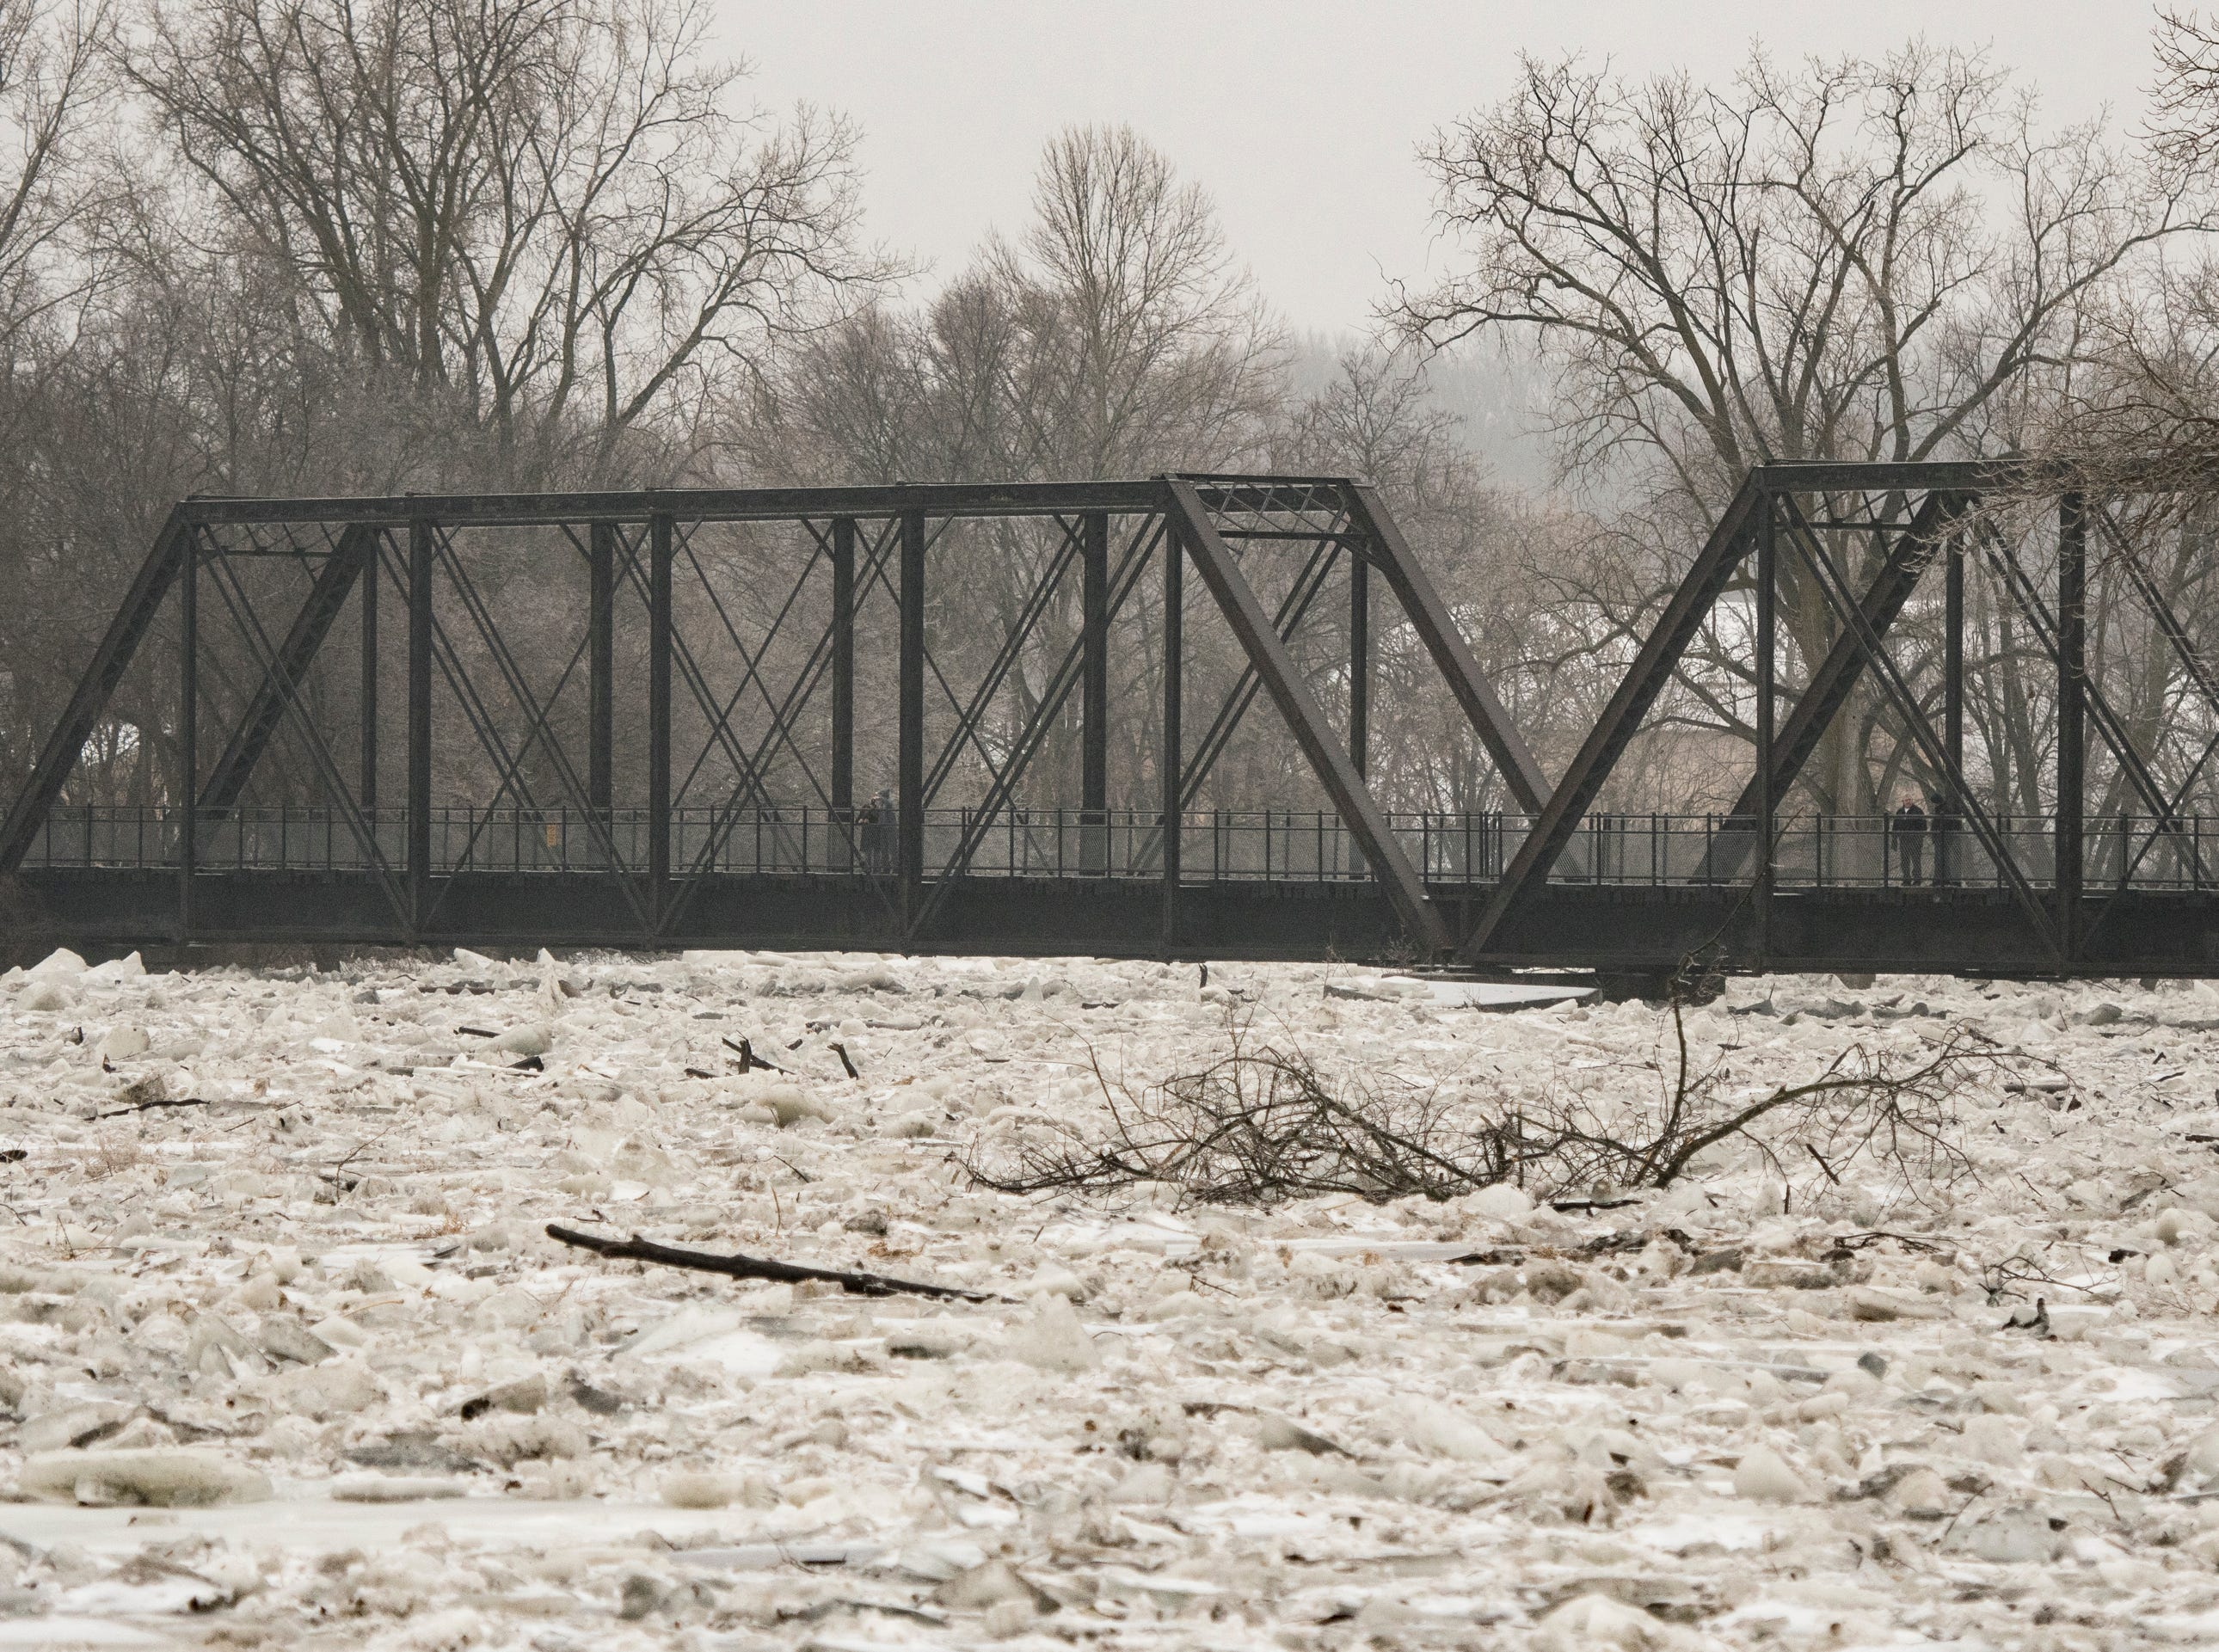 The trussle on the Grand River near downtown Portland, Michigan seen Wednesday morning, Feb. 6, 2019.  About 50 people were evacuated late Tuesday evening through early Wednesday morning due to flooding along the Grand River caused by melting snow and an ice jam in the river.  [Matthew Dae Smith/Lansing State Journal]